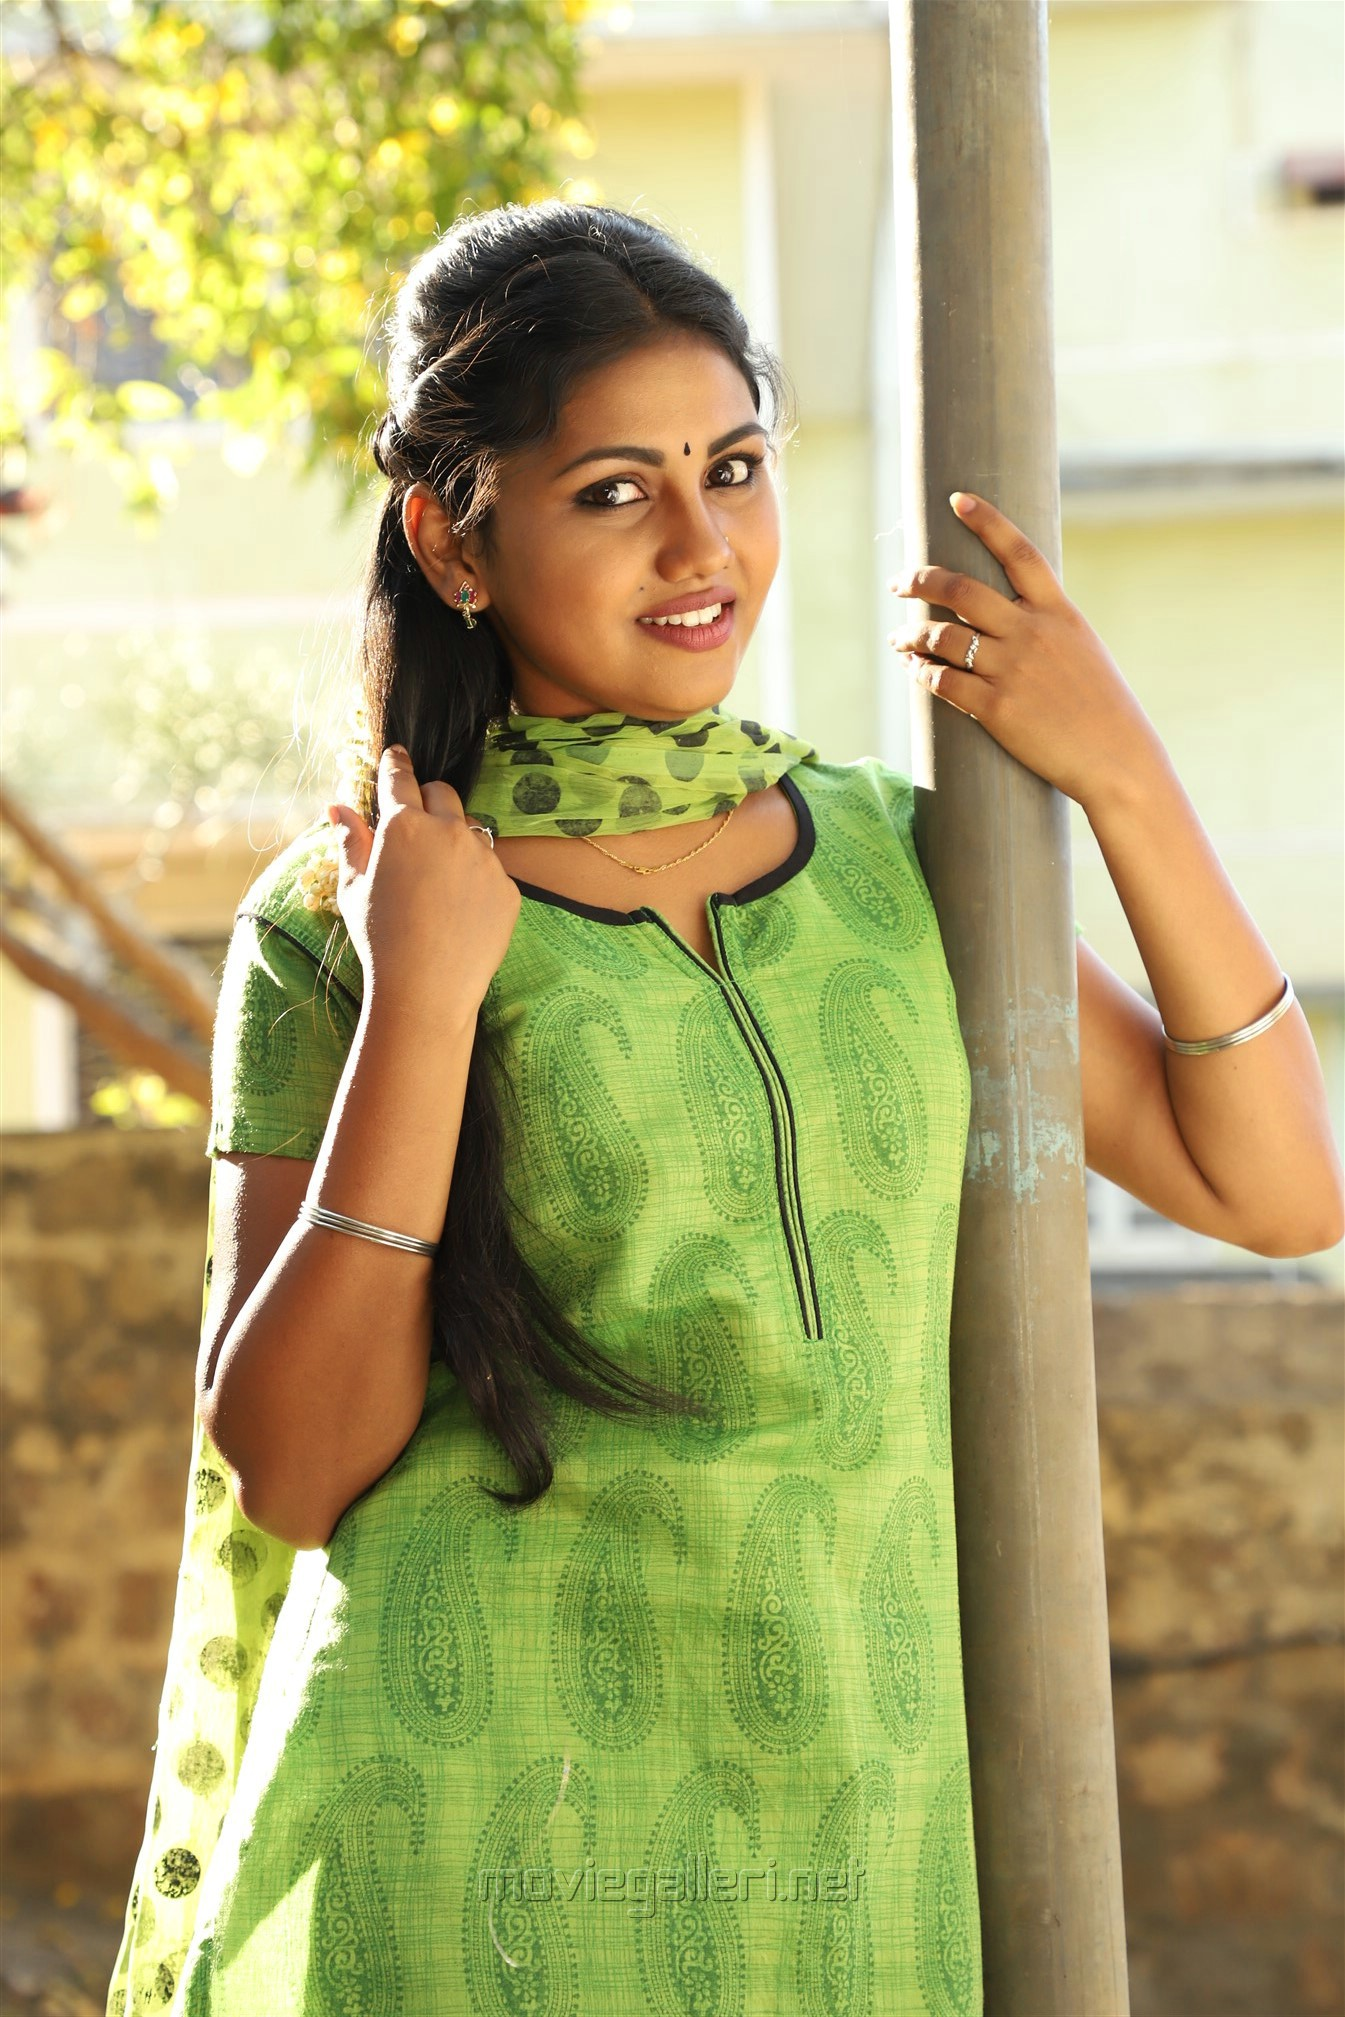 Actress Manishajith in Vakiba Vannakkili Barathi Movie Stills